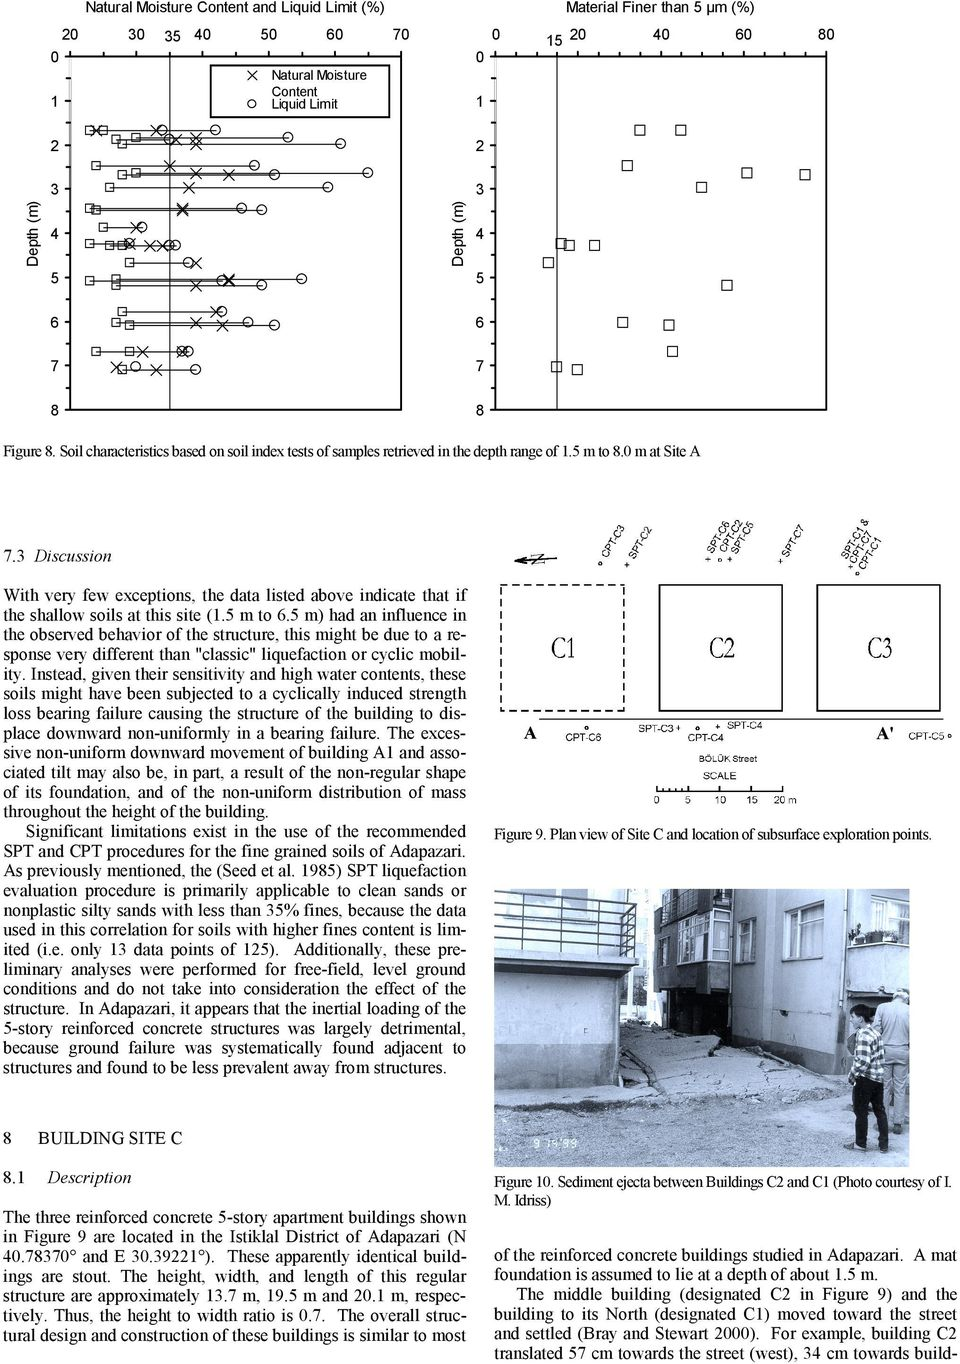 Discussion With very few exceptions, the data listed above indicate that if the shallow soils at this site (. m to.